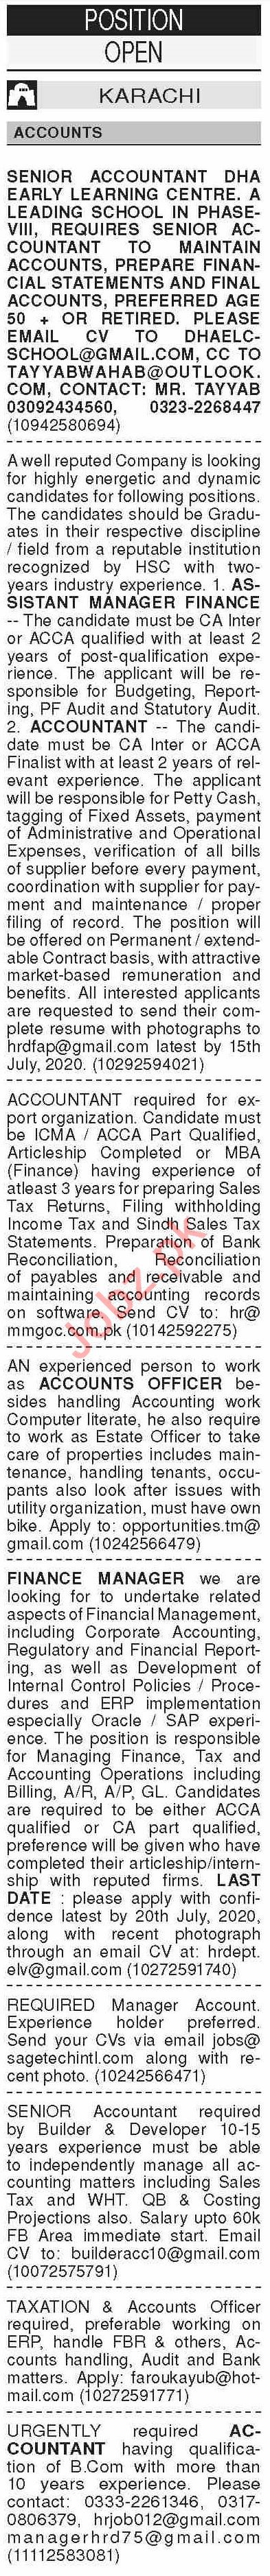 Dawn Sunday Classified Ads 12th July 2020 for Accounts